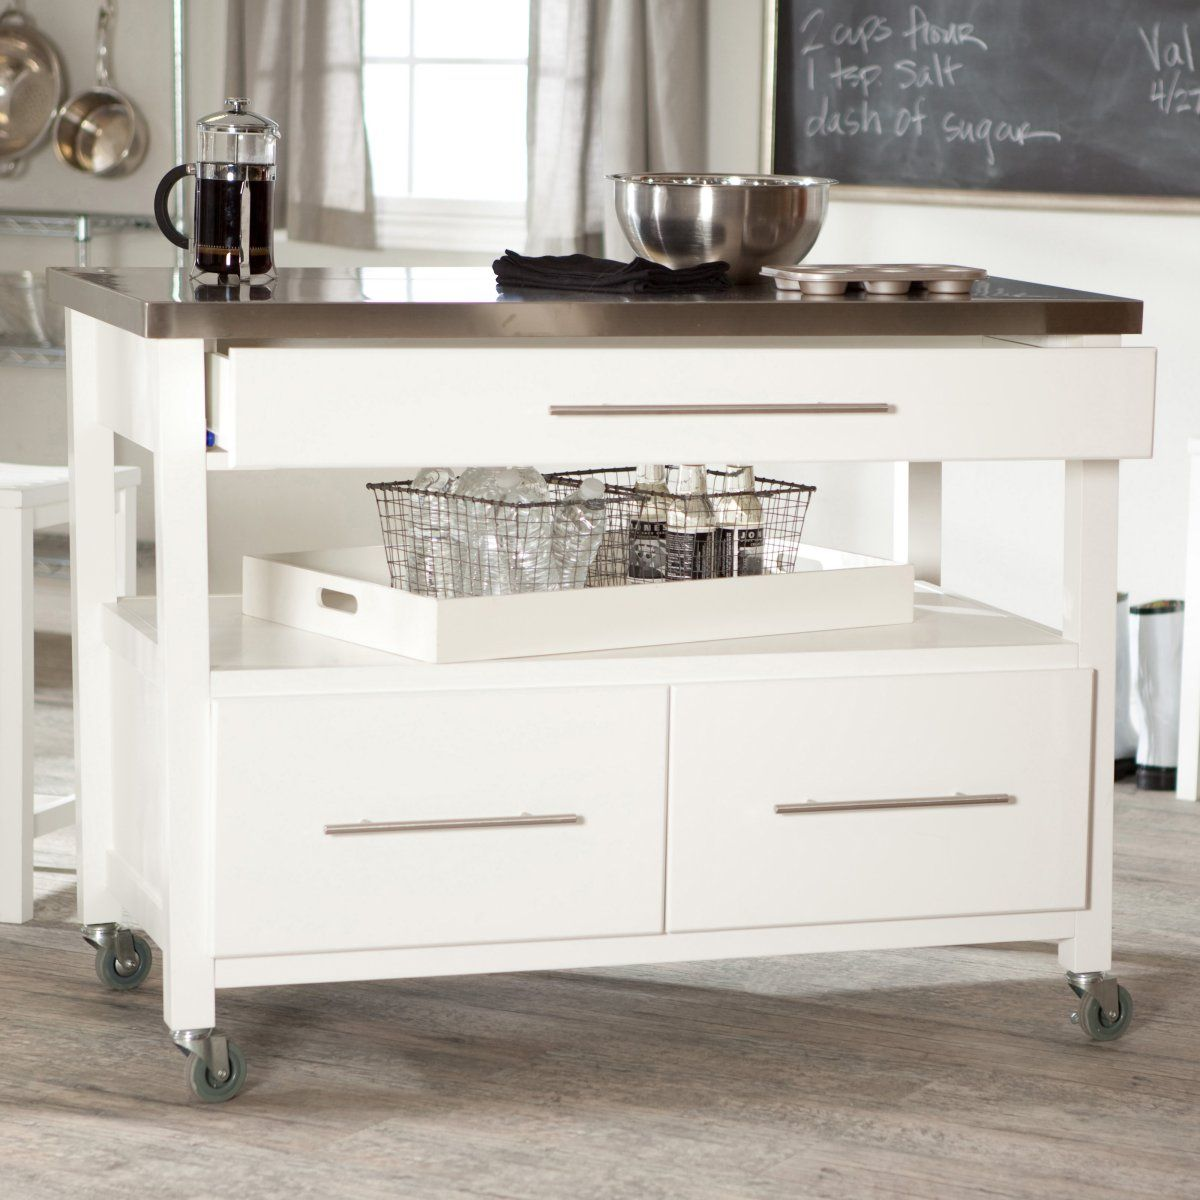 Attirant Concord Kitchen Island With Stools   White   Kitchen Islands And Carts At  Hayneedle